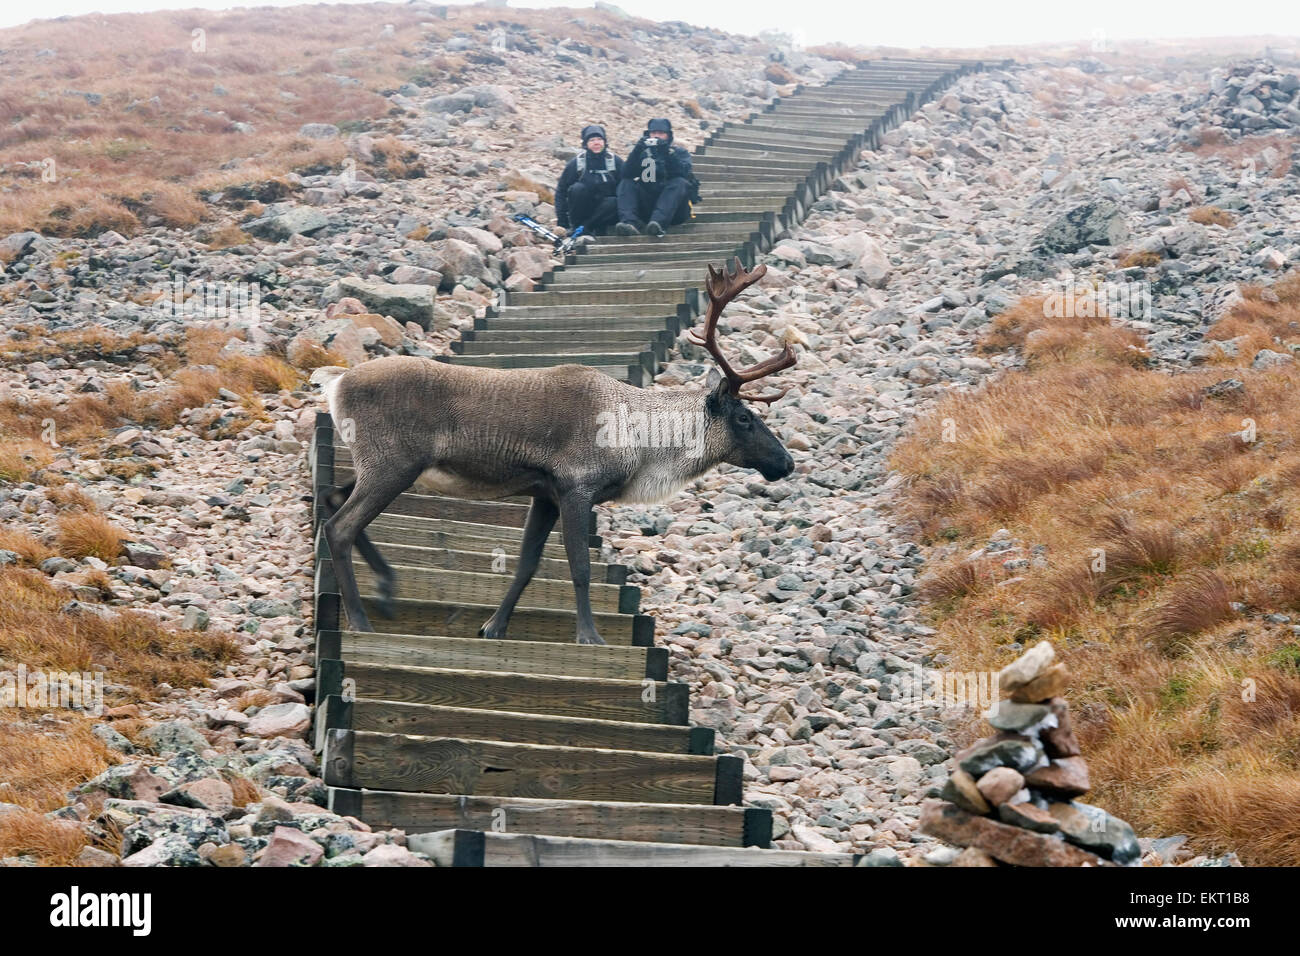 People Photographing Woodland Caribou Walking On Alpine Tundra, Mount Jacques Cartier, Gaspesie National Park, Quebec - Stock Image